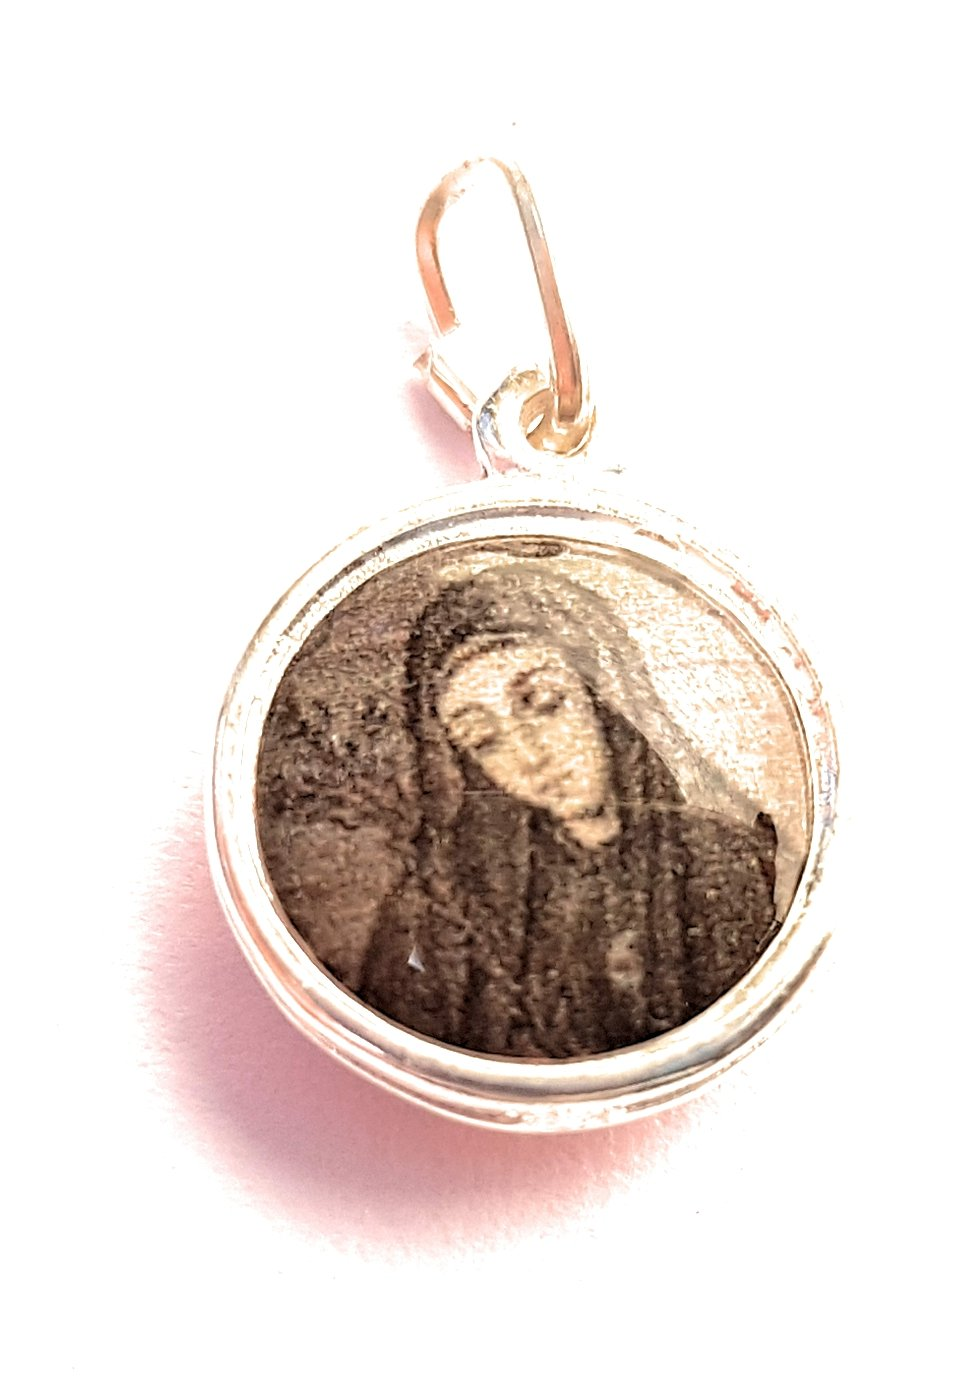 Relic Medal 3rd Class Mariana de Jesús de Paredes patron of Ecuador Americas bodily ills loss of parents people rejected by religious orders sick people sickness nacida María Ana de Paredes Flores